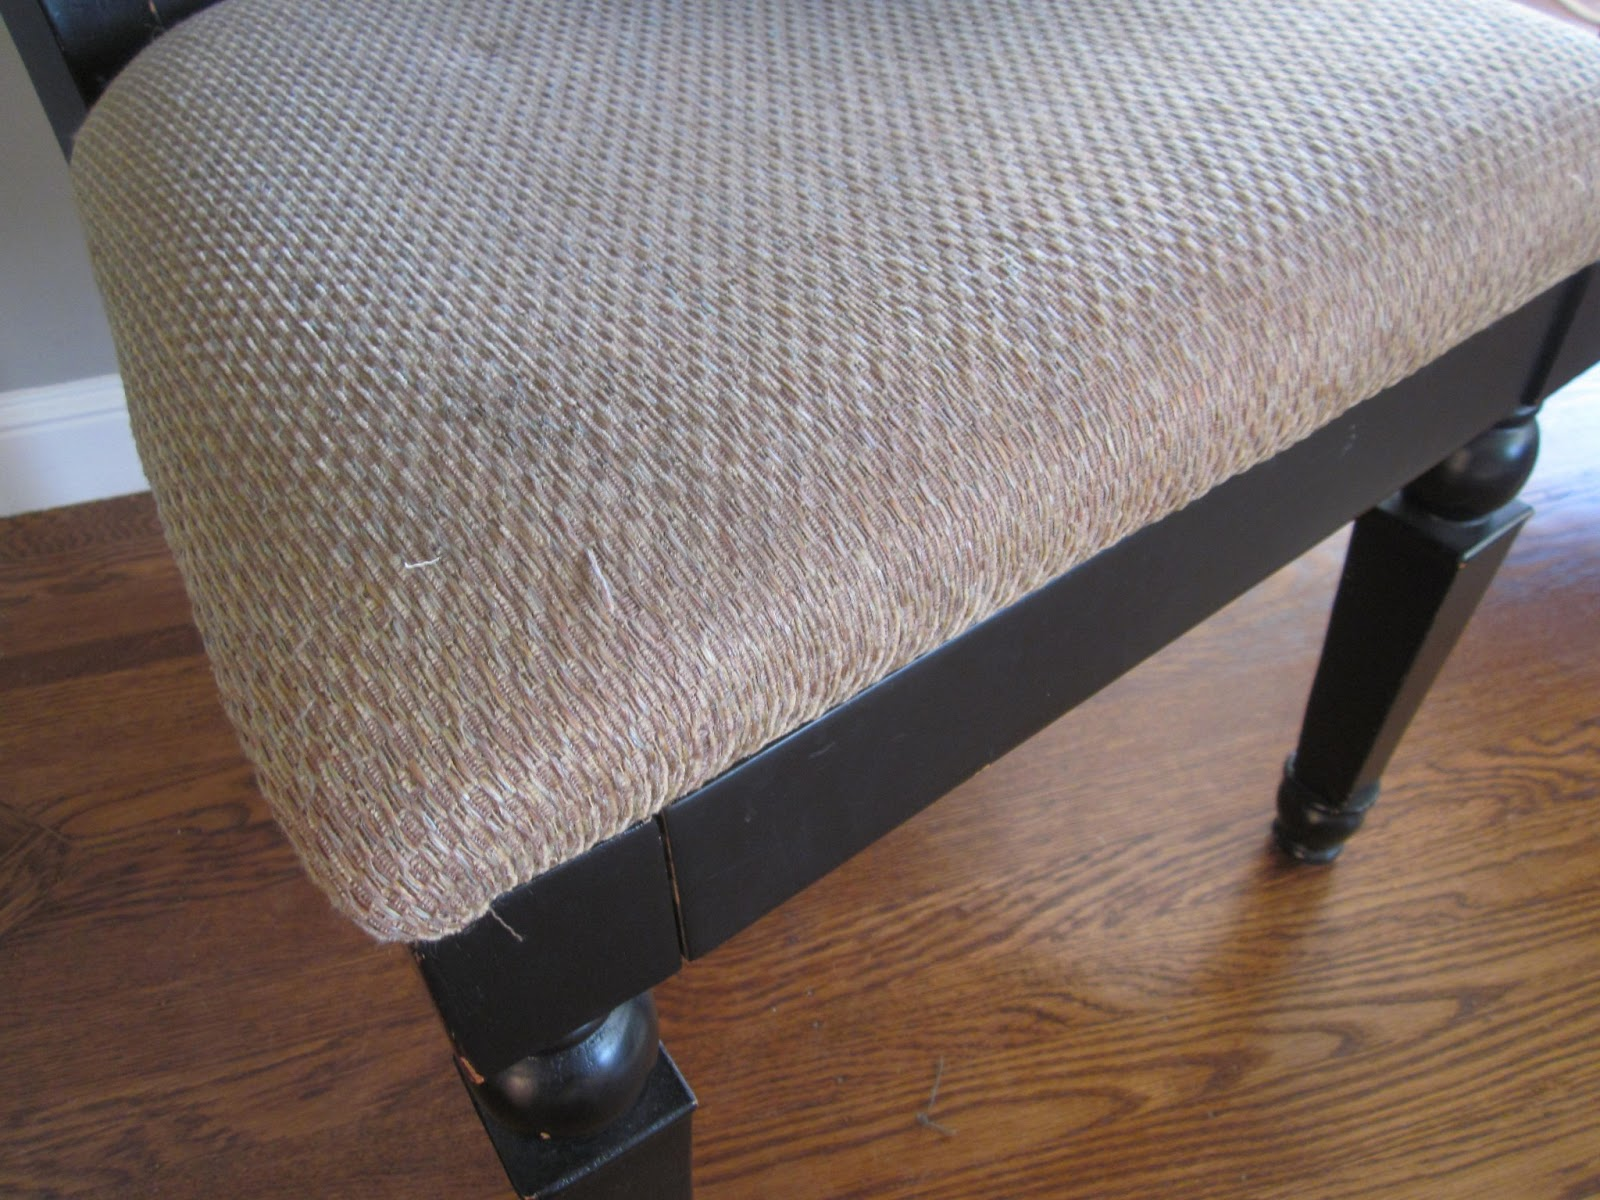 Fabric To Reupholster Dining Room Chairs From Foothills To Fog Reupholstered Dining Room Chairs